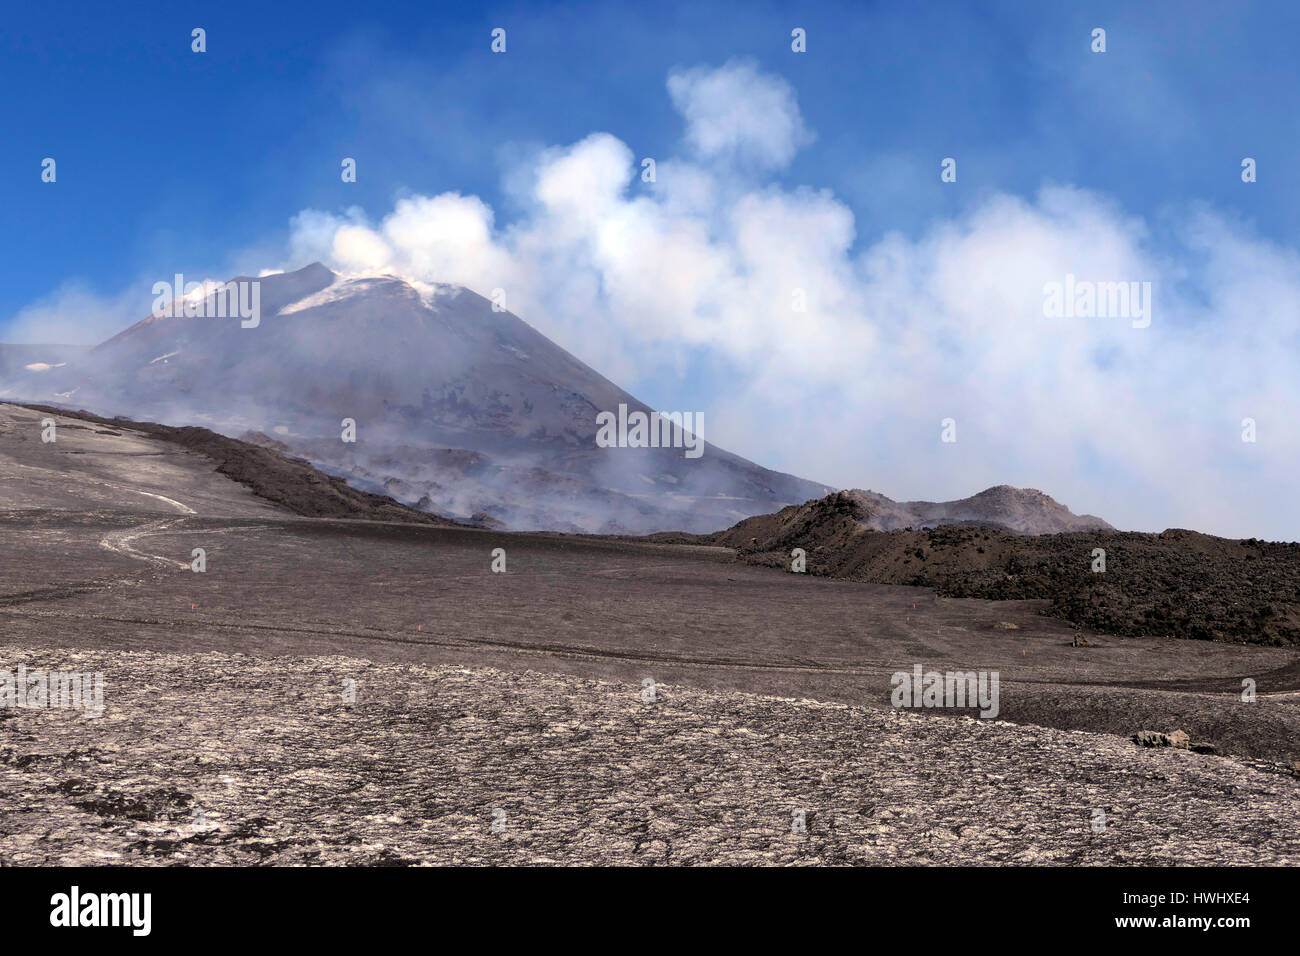 View of crater summit, snow, lava, smoke, magma and molten rocks. March 2017 eruption on Mount Etna in Sicily, southern - Stock Image